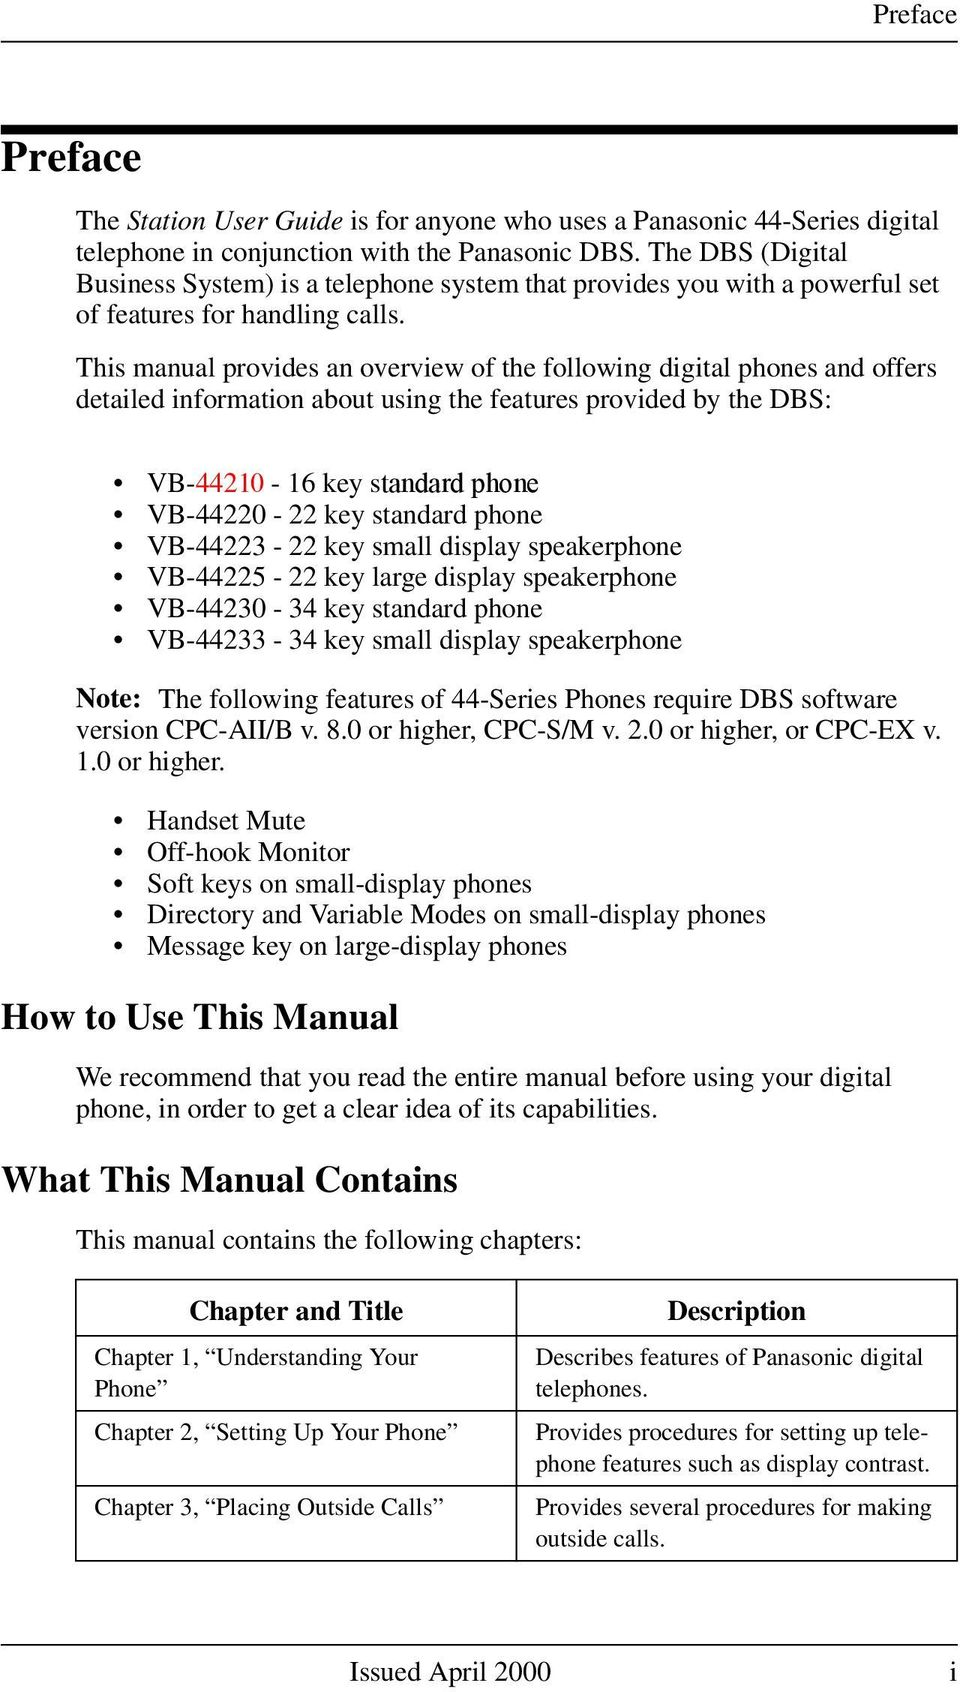 This manual provides an overview of the following digital phones and offers detailed information about using the features provided by the DBS: VB-44210-16 key standard phone VB-44220-22 key standard